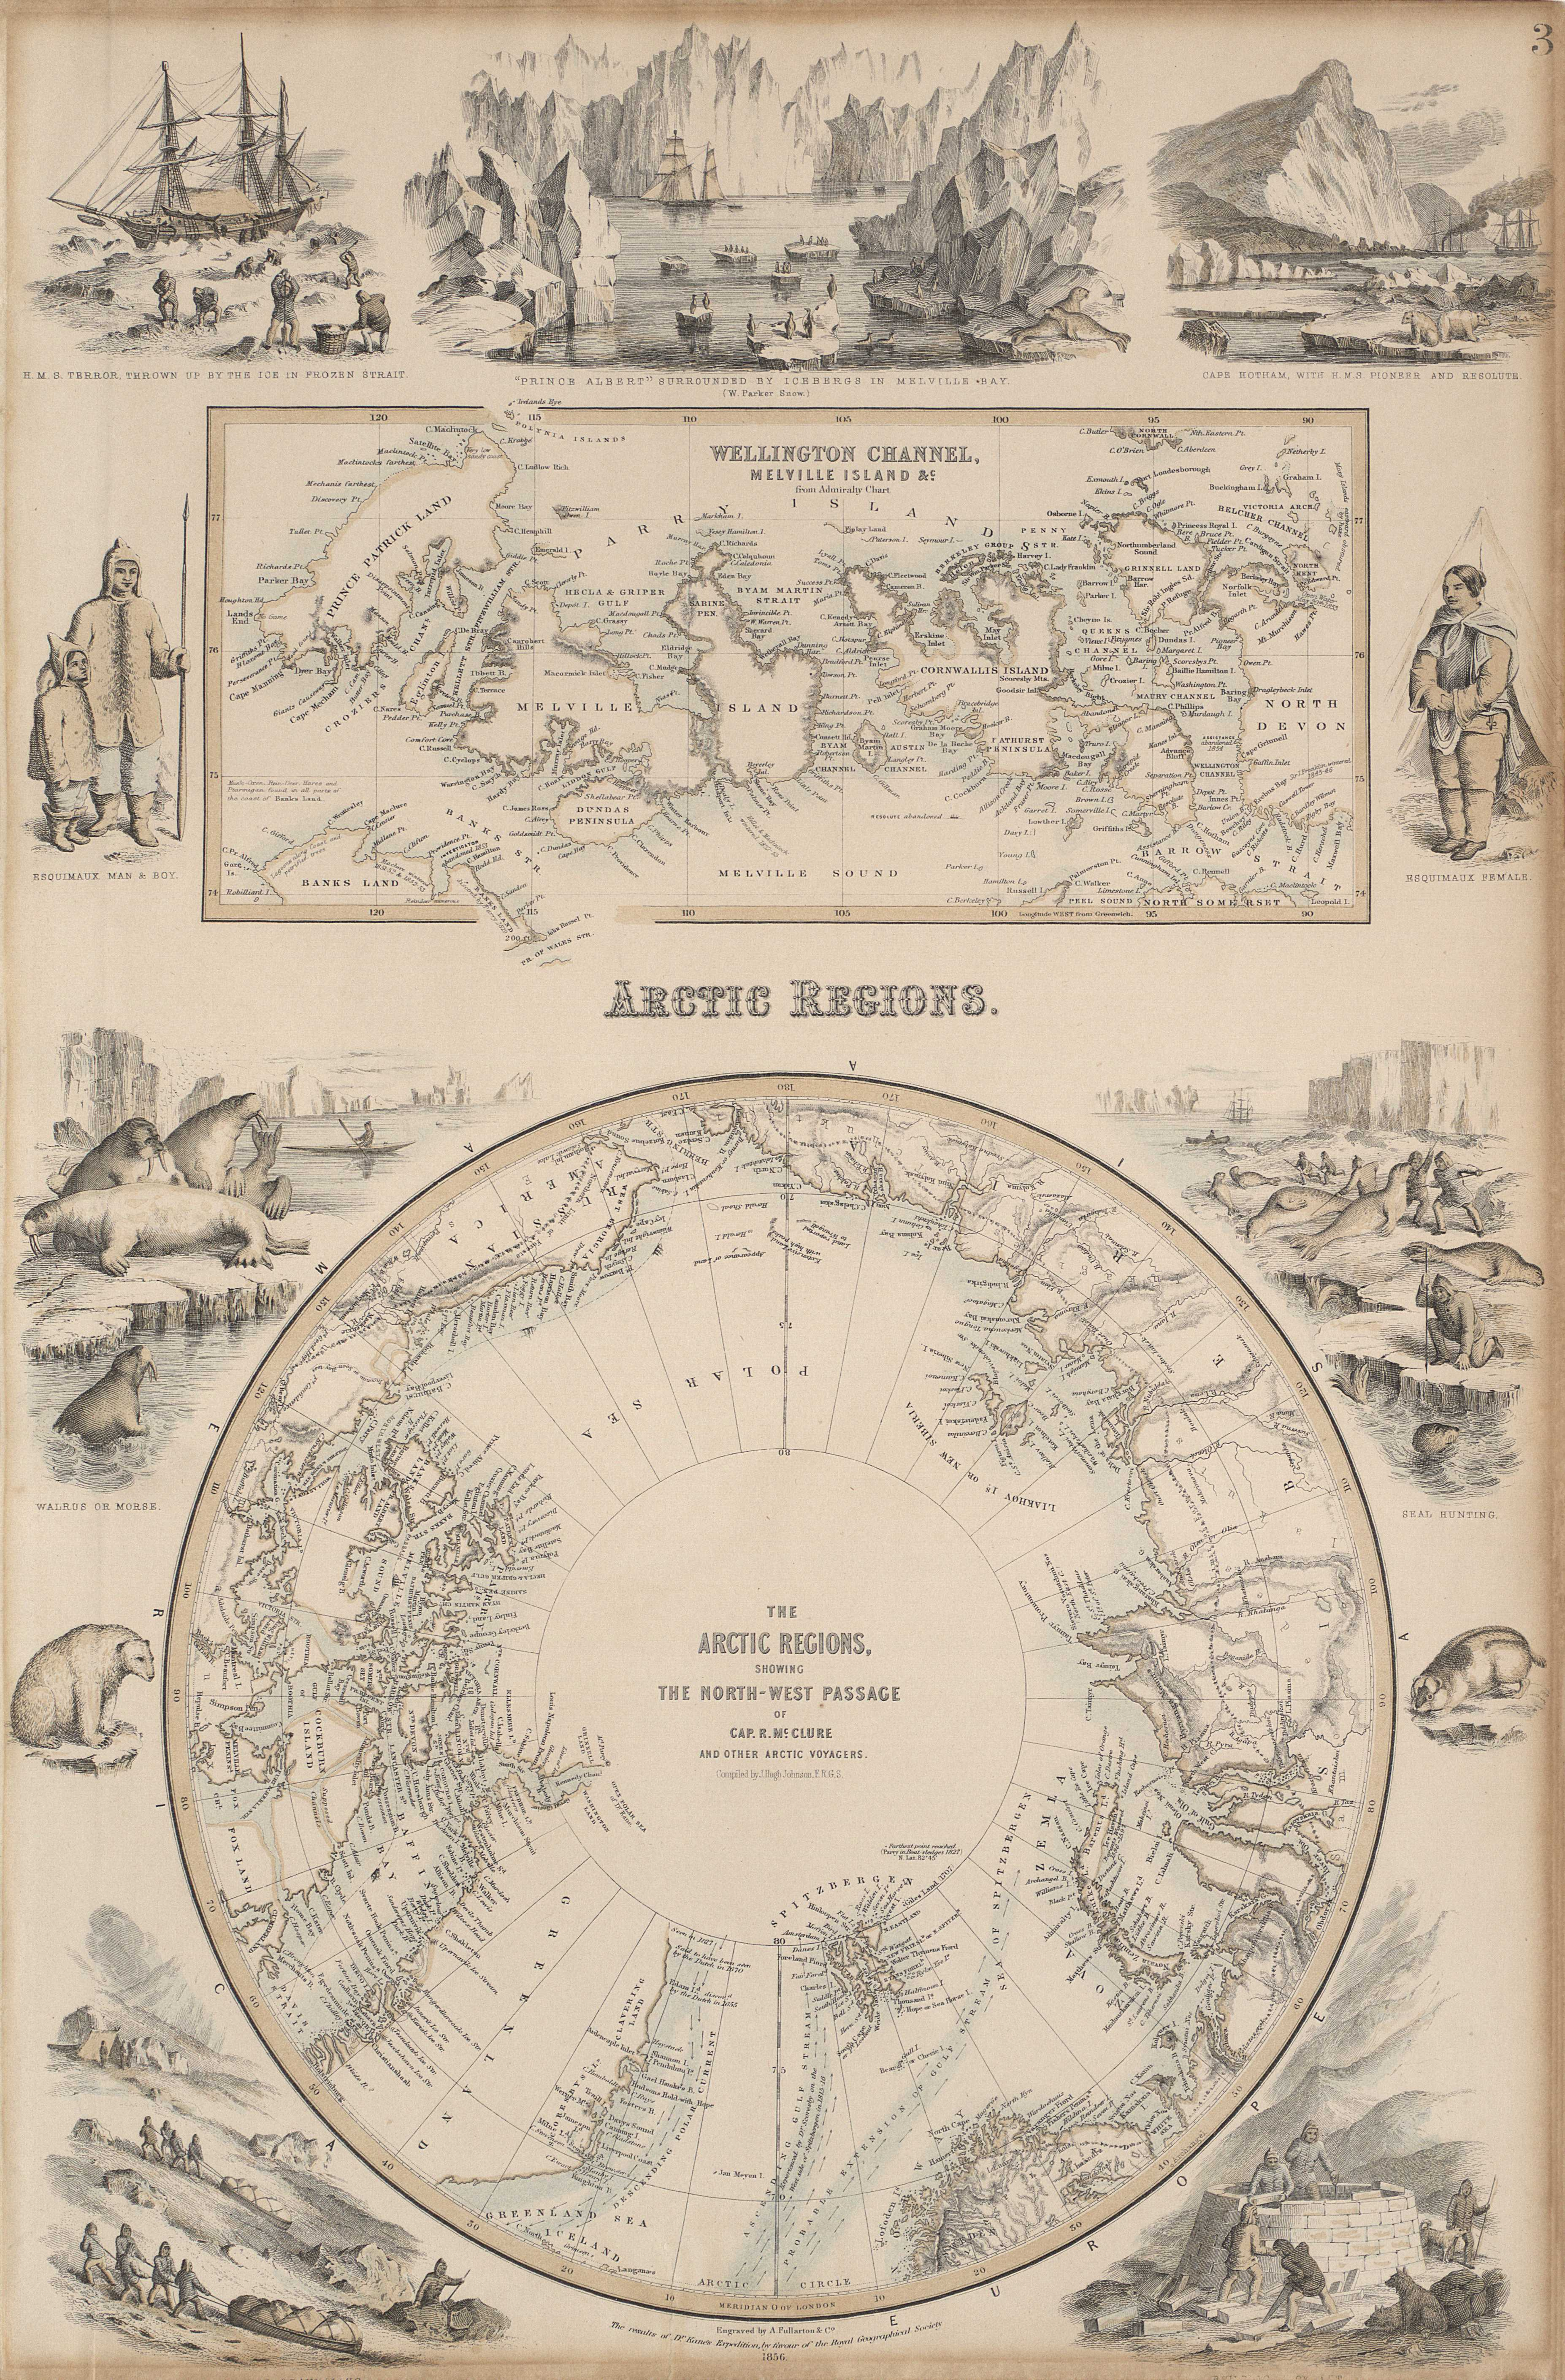 The Arctic regions, showing the northwest passage of cap. R. McClure and other Arctic voyages